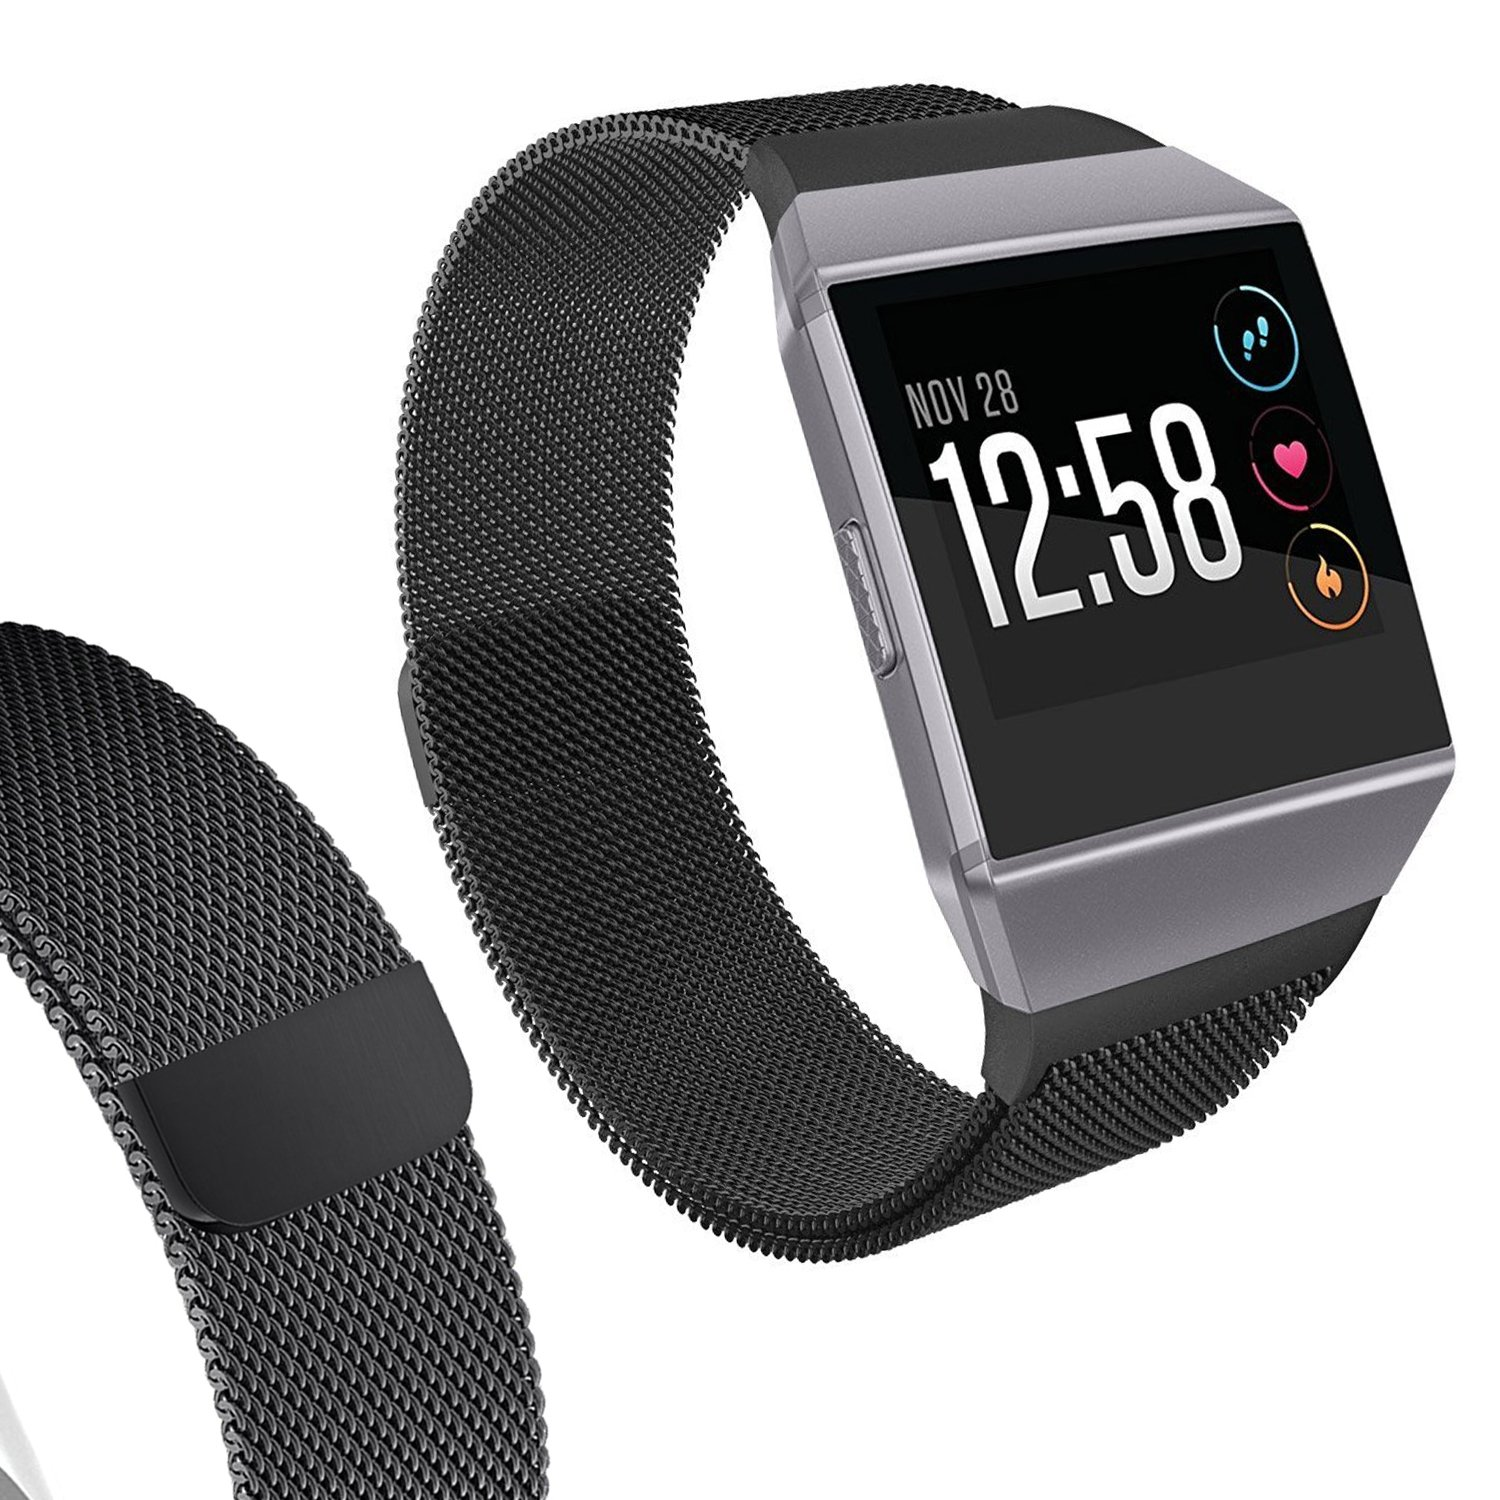 Amazon.com: I-SMILE Fitbit Ionic Smartwatch Bands, Milanese ...